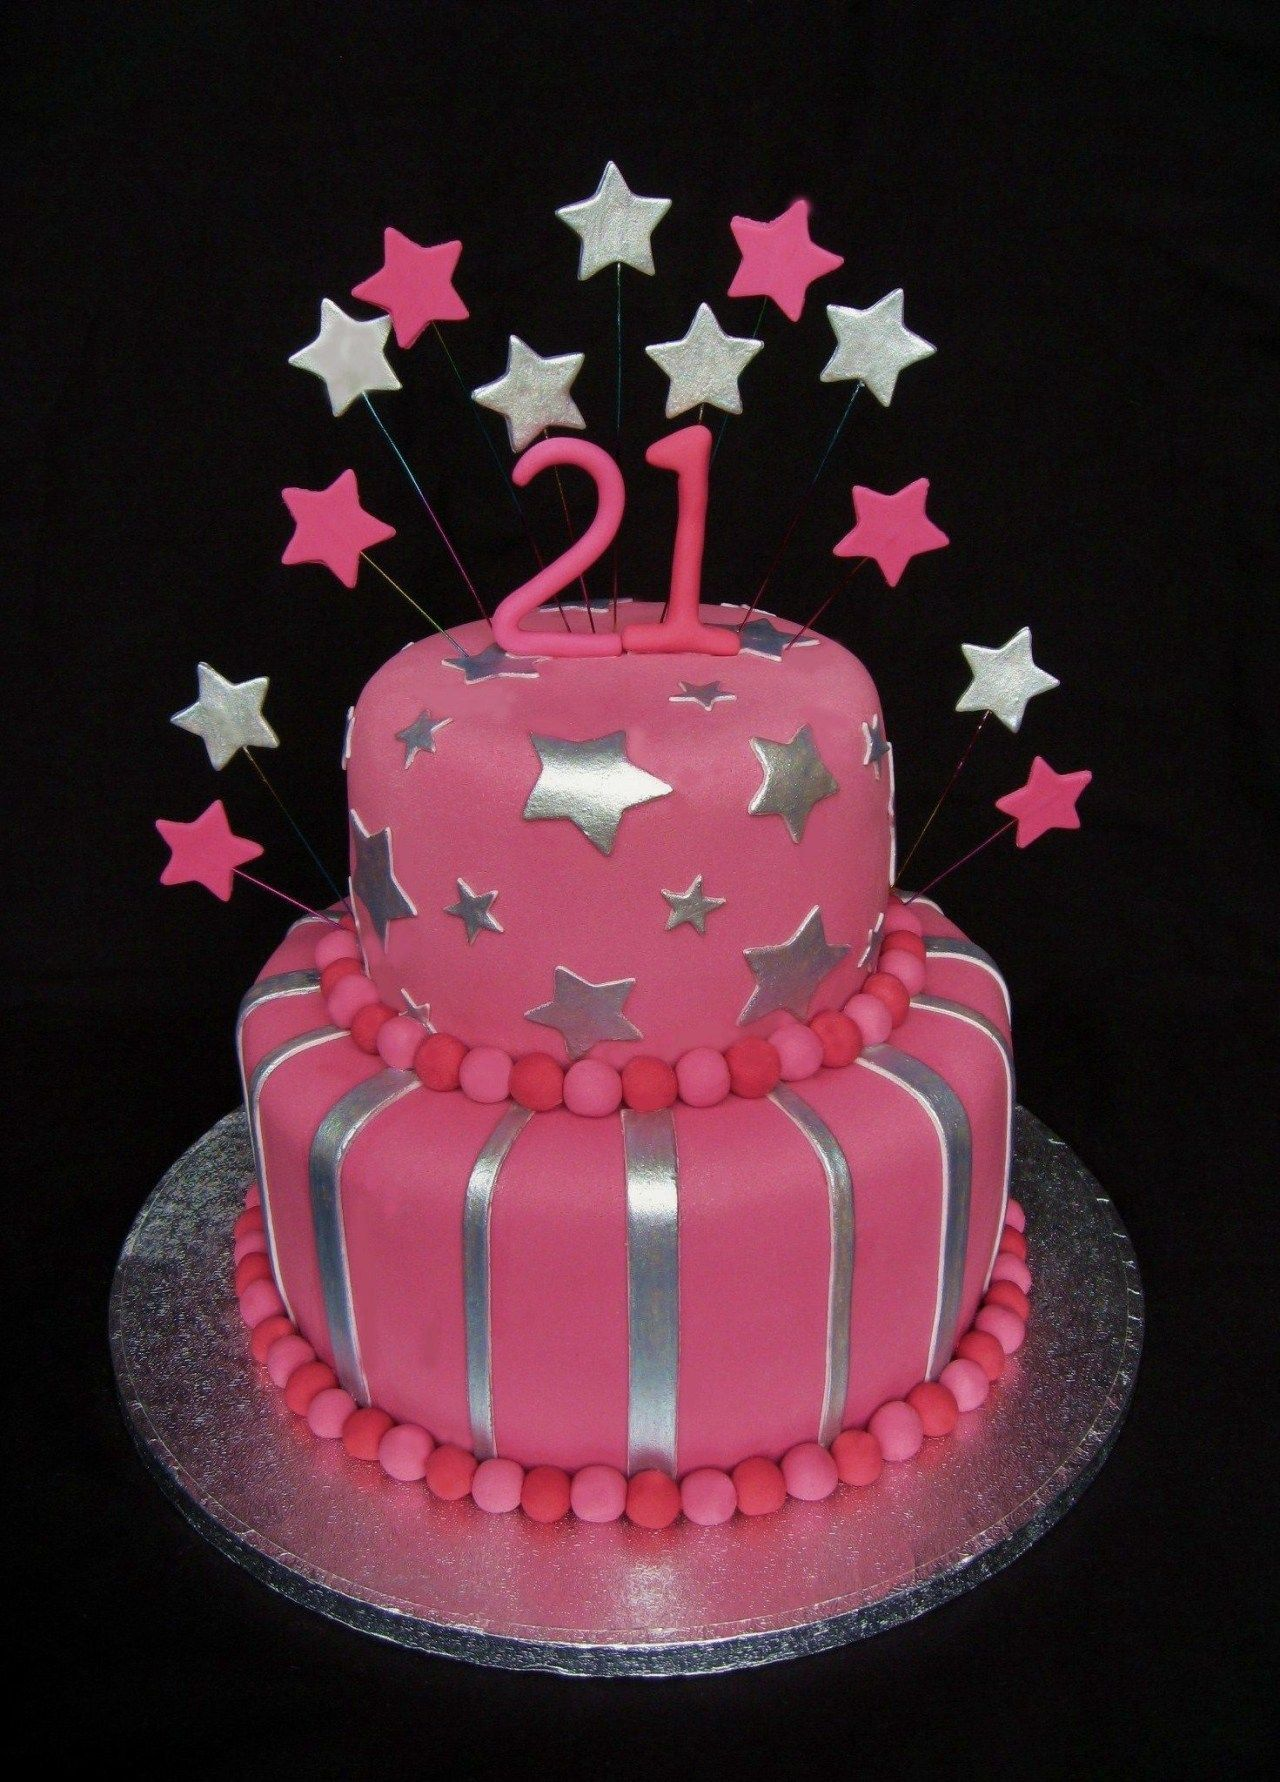 Birthday Cakes For Ladies 21st Cake Girls Pinterest